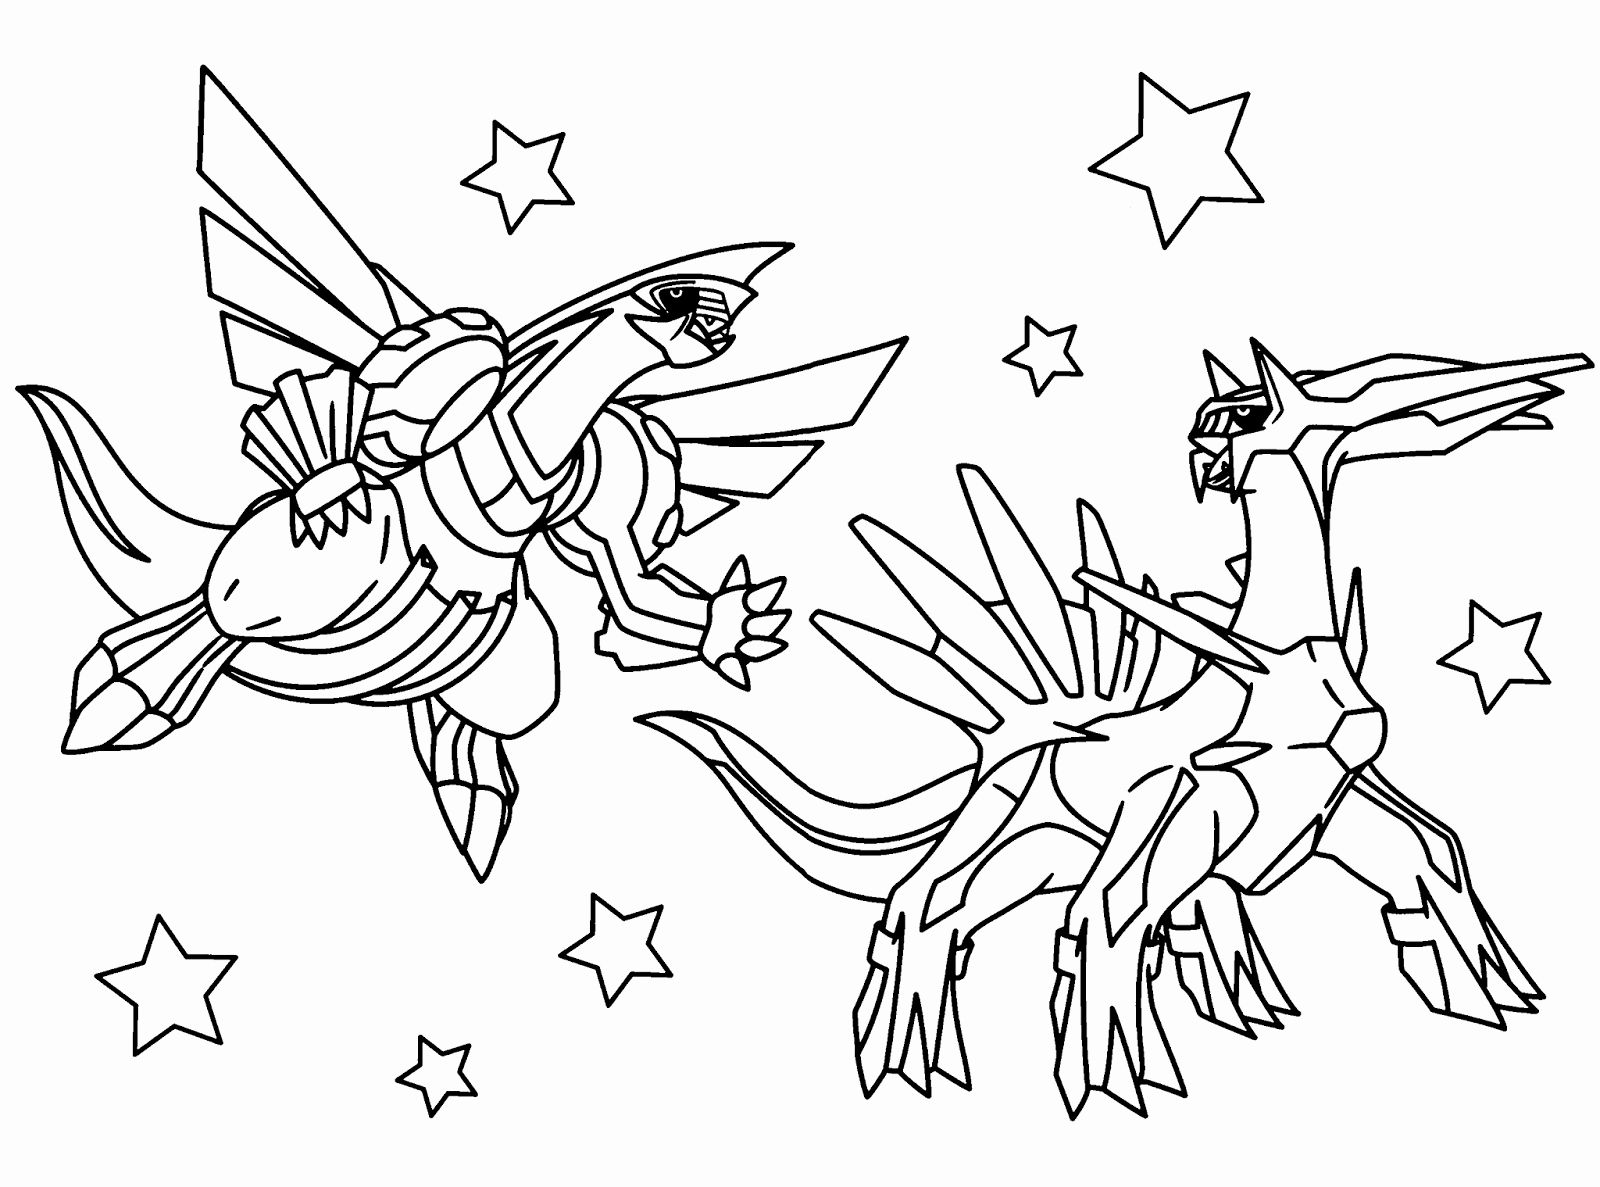 Legendary Pokemon Coloring Page Inspirational Free Legendary Pokemon Coloring Pages For Kids Shark Coloring Pages Pokemon Coloring Pages Cartoon Coloring Pages